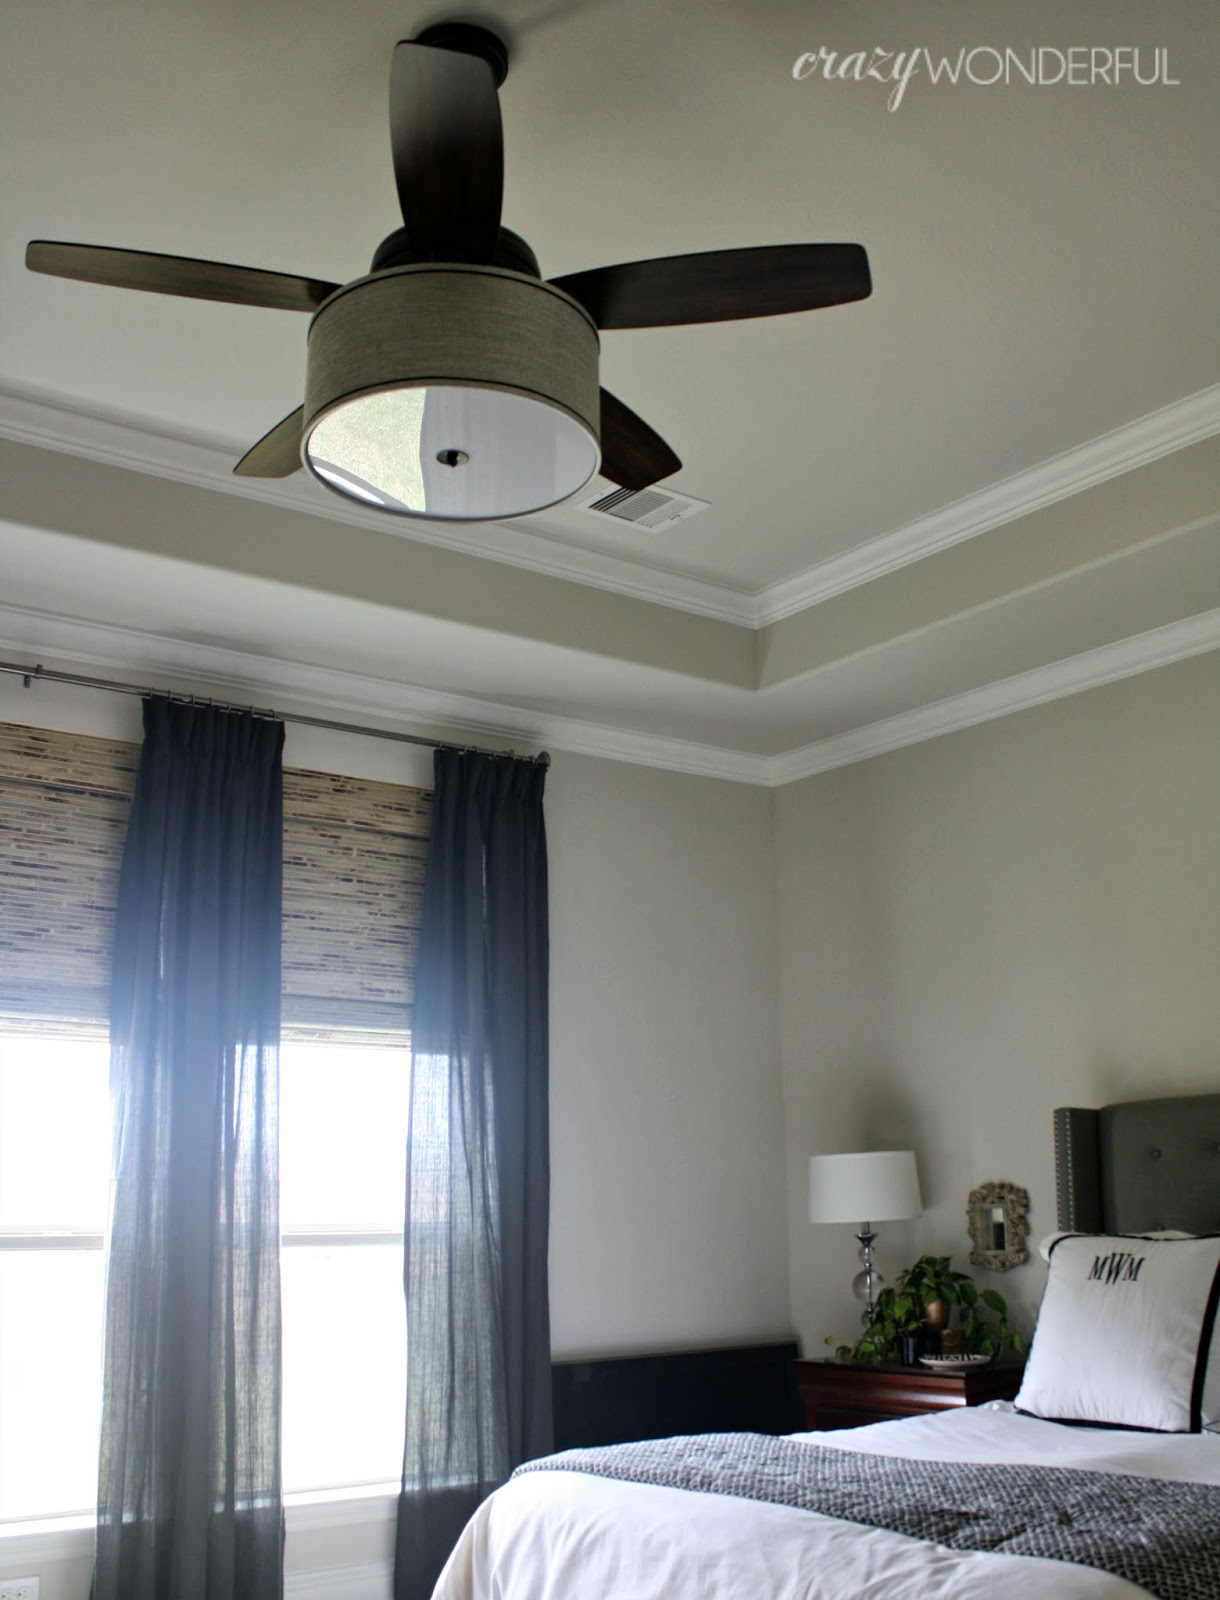 DIY drum shade ceiling fan Crazy Wonderful